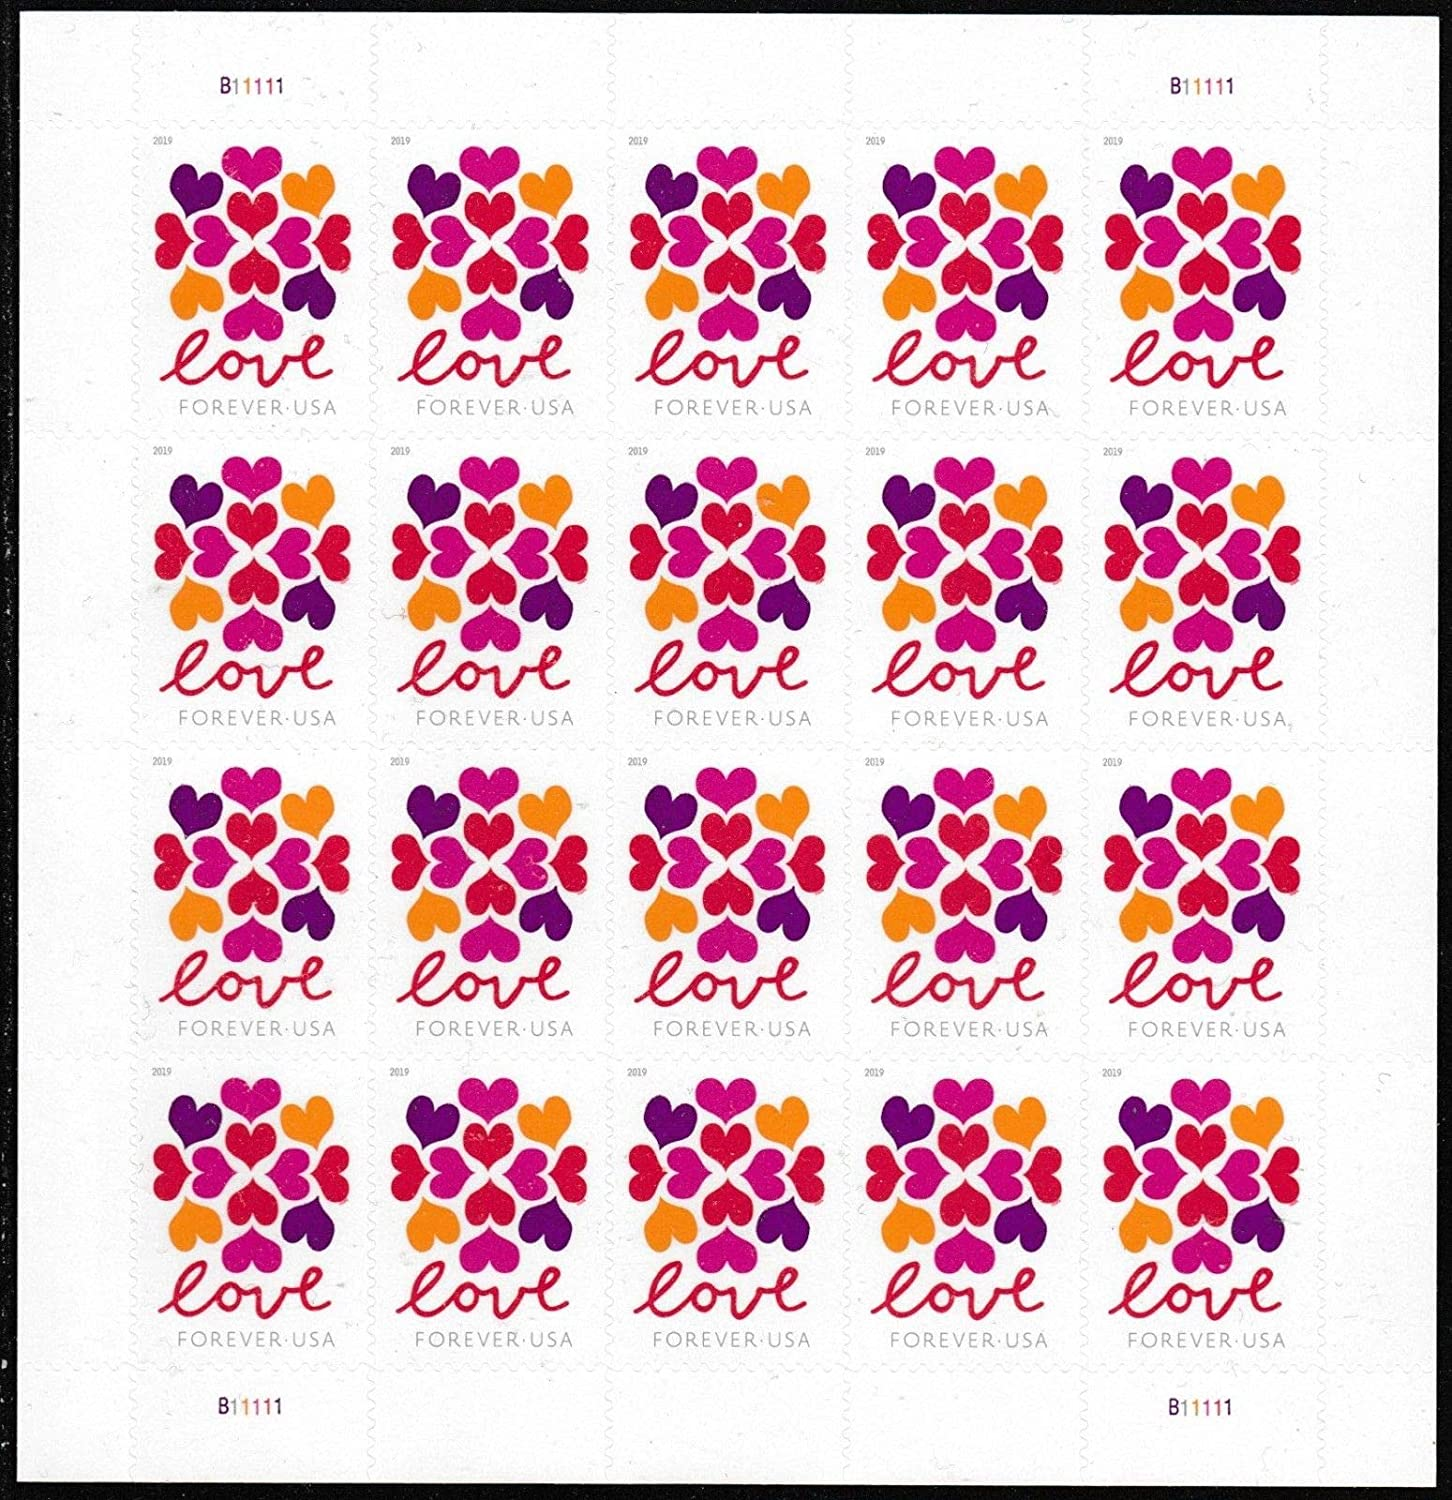 2019 Love Hearts Blossom Pane of 20 Forever Postage Wedding Stamps Scott 5339